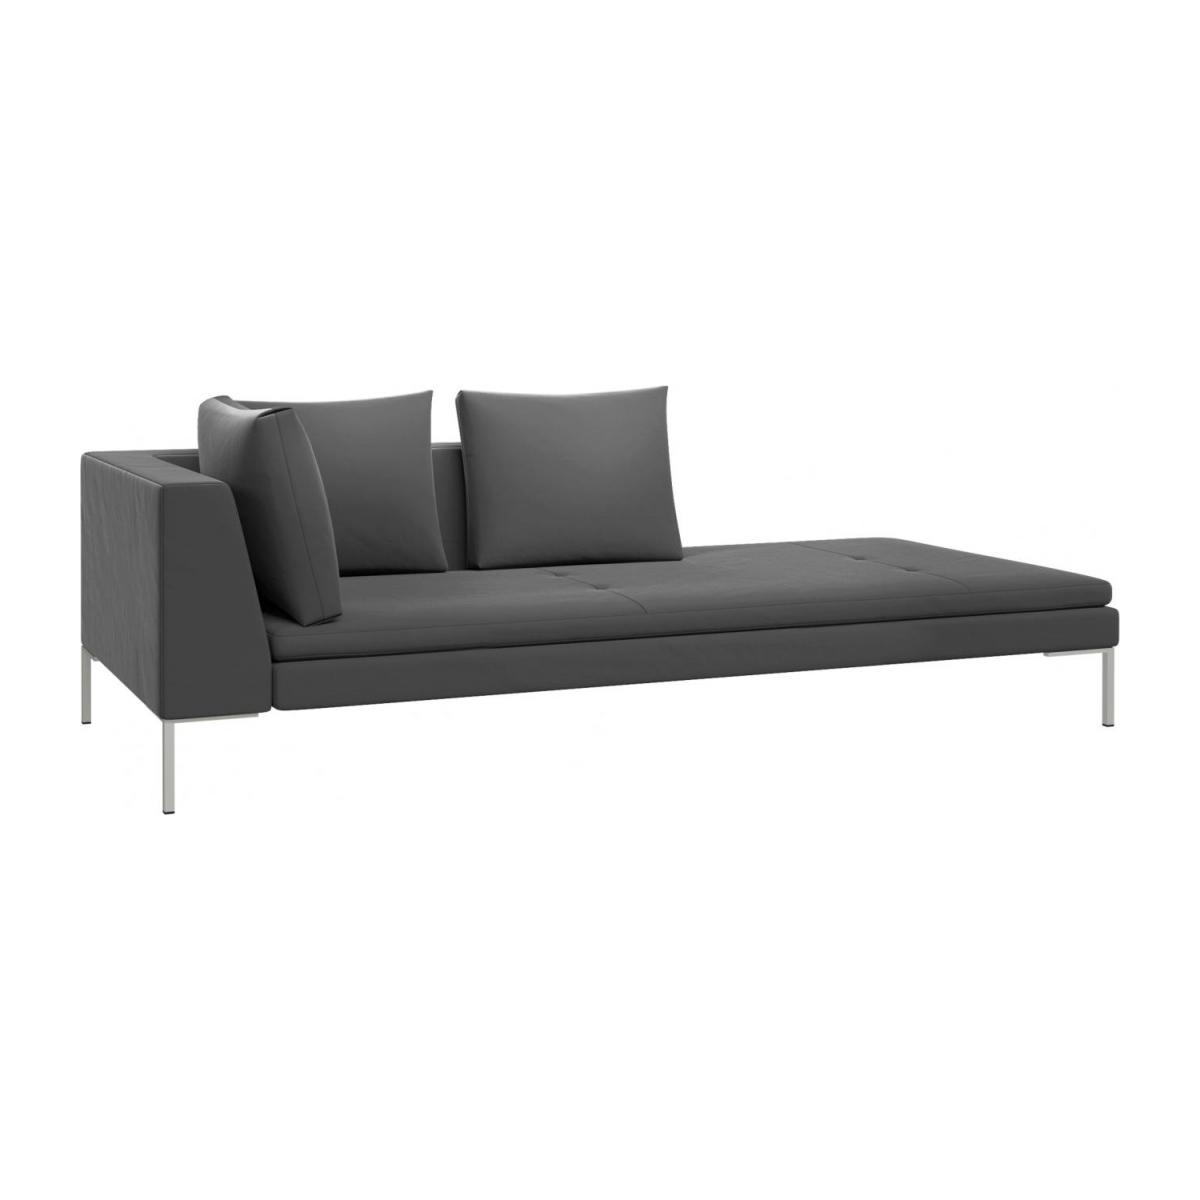 Right chaise longue in Super Velvet fabric, silver grey